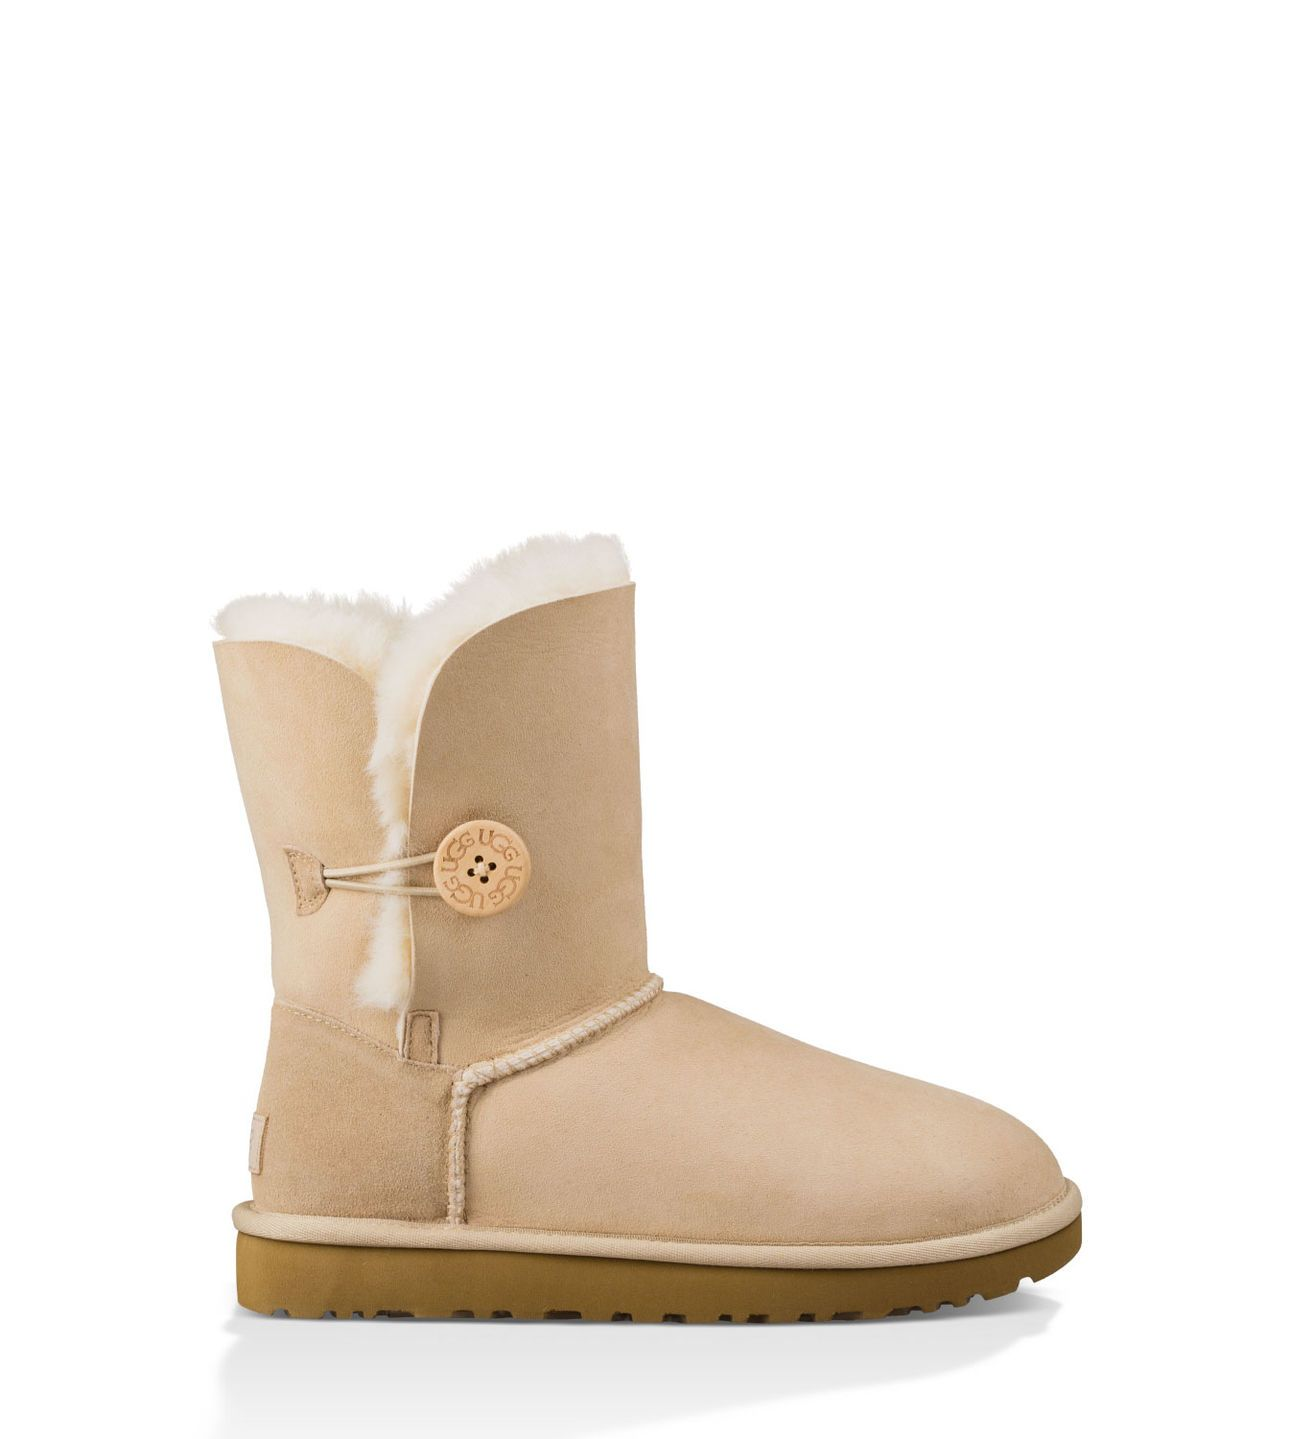 adfbde43611 Women's Share this product Bailey Button II Boot | Things to Wear ...